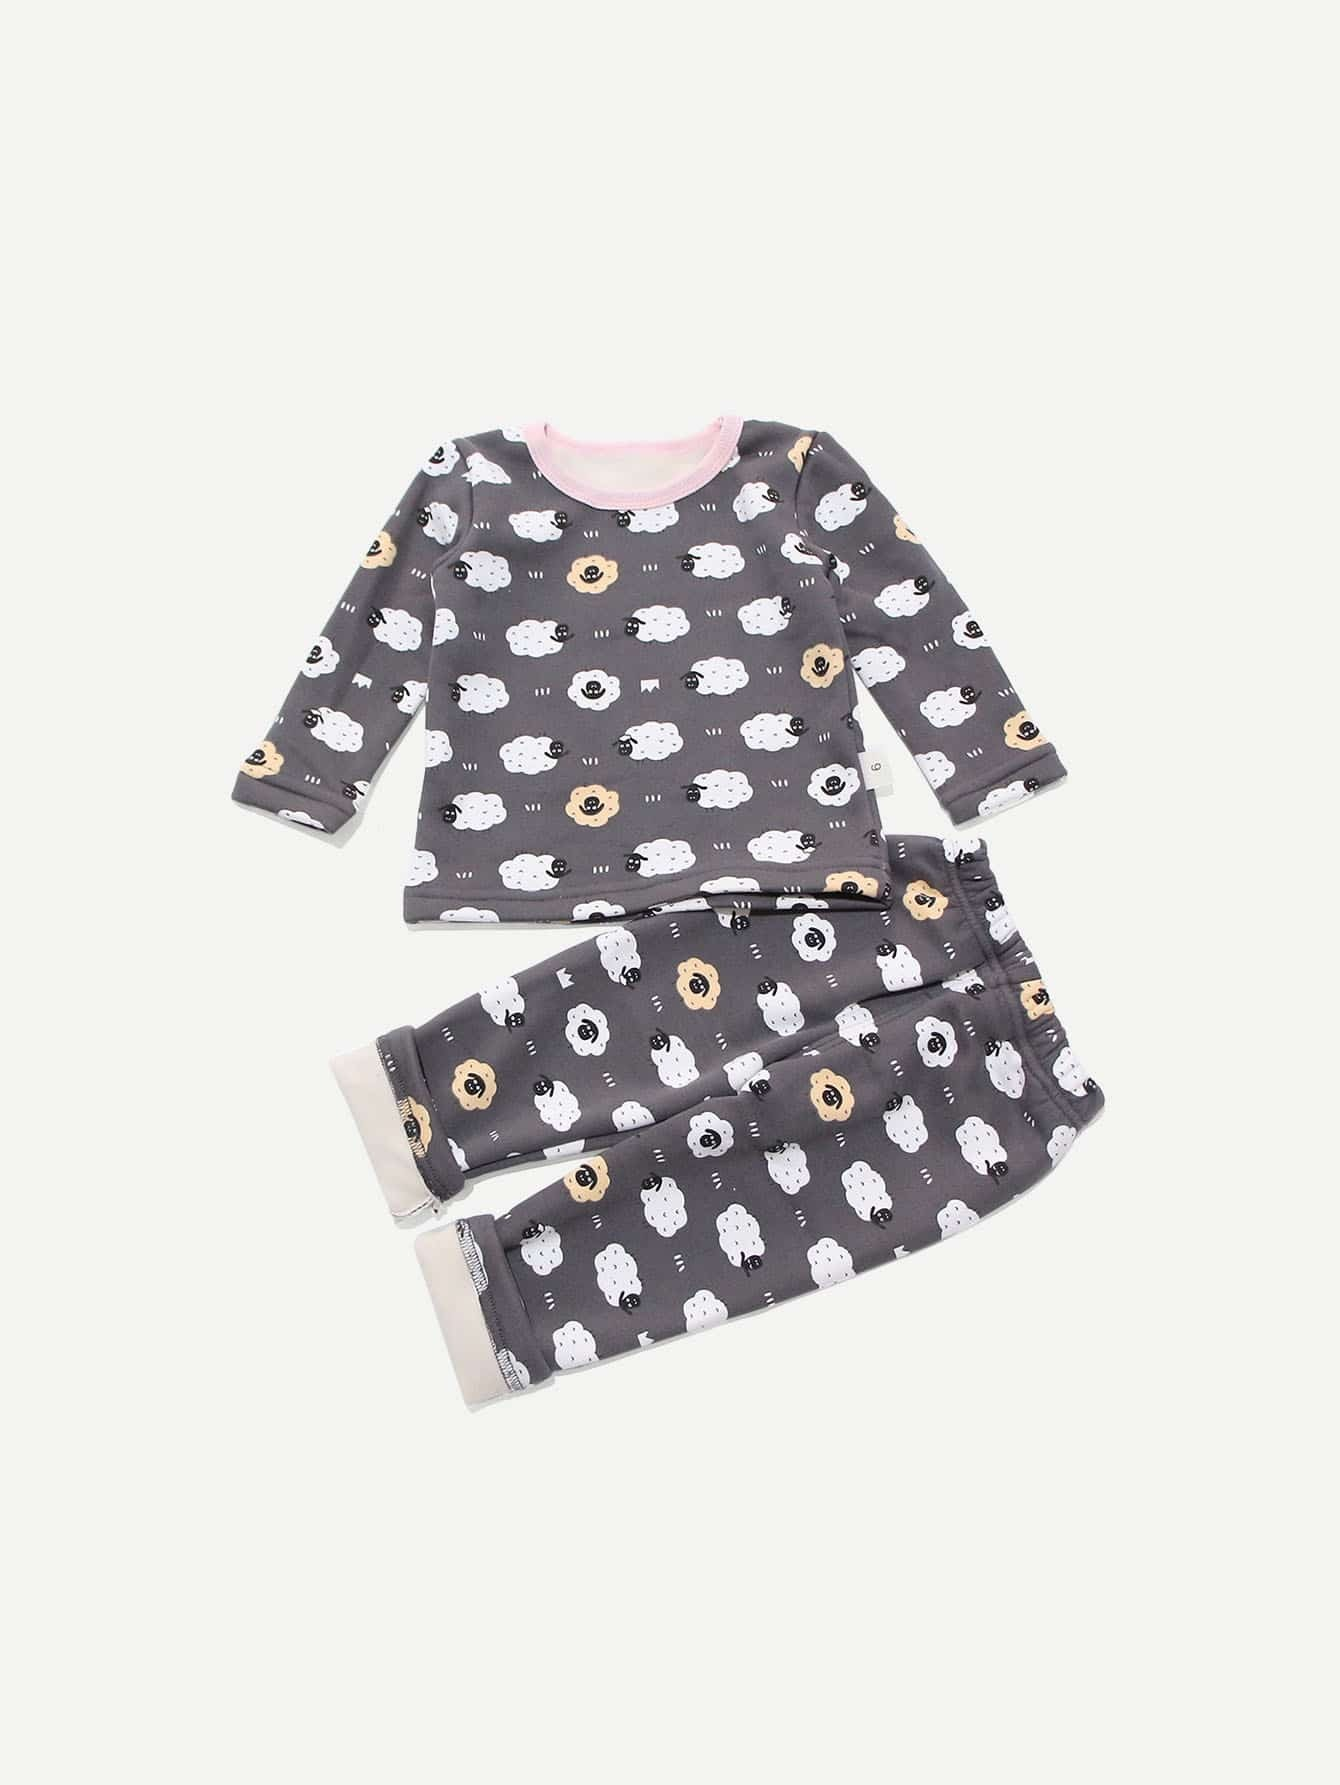 Boys Sheep Print Top With Pants Boys Sheep Print Top With Pants